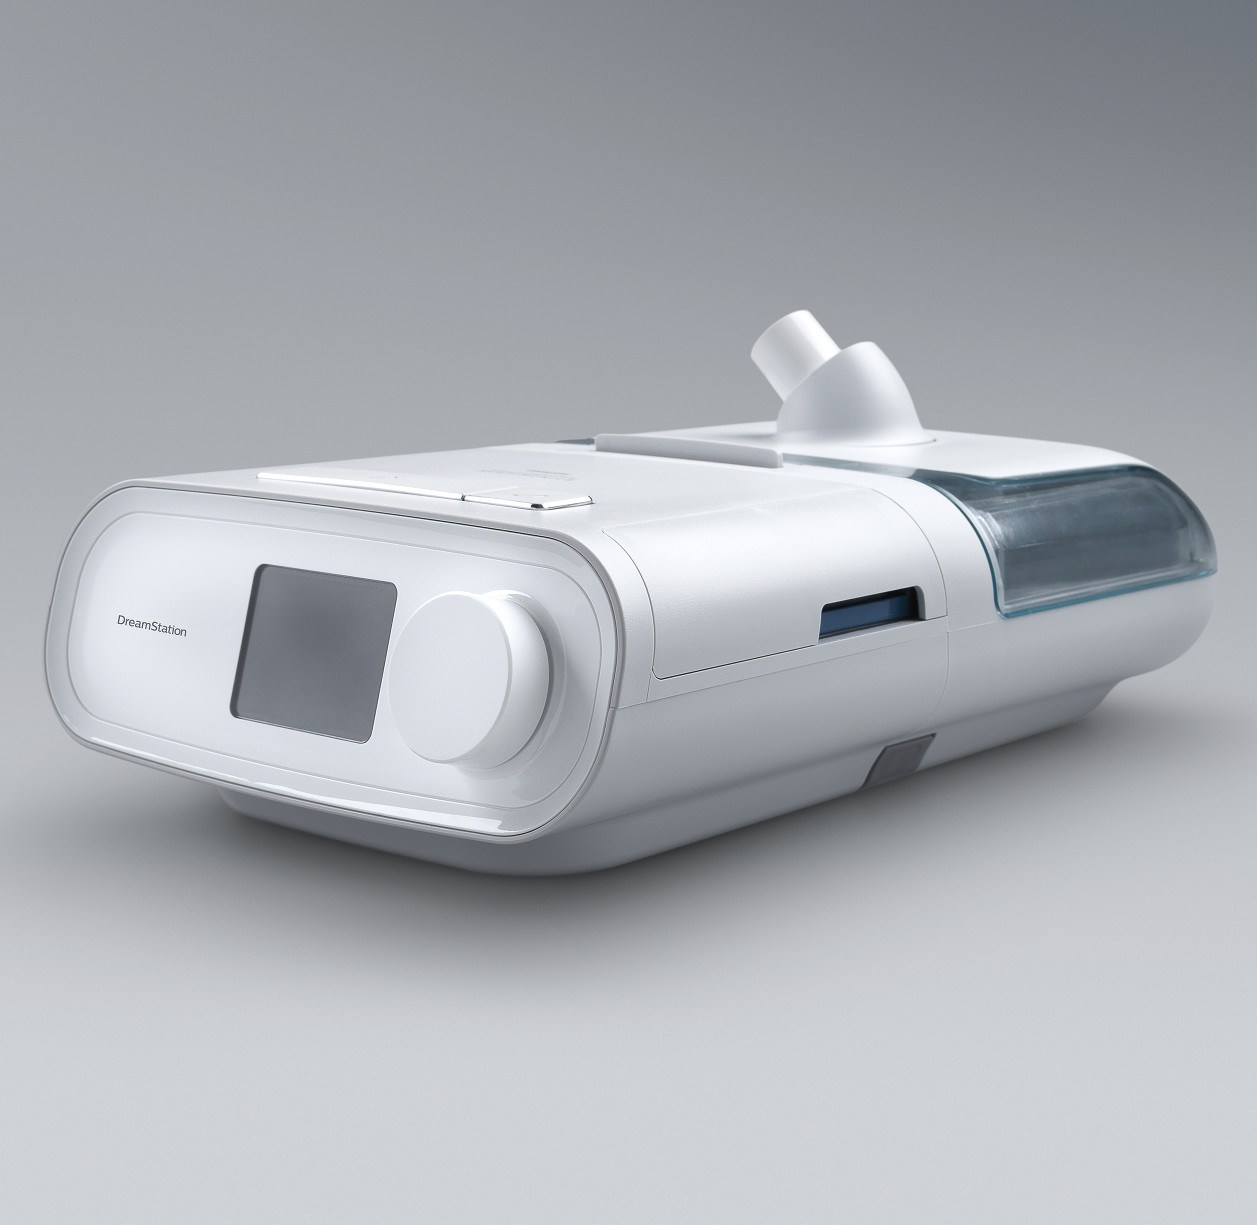 DreamStation CPAP Pro with Humidifier #4E5D67